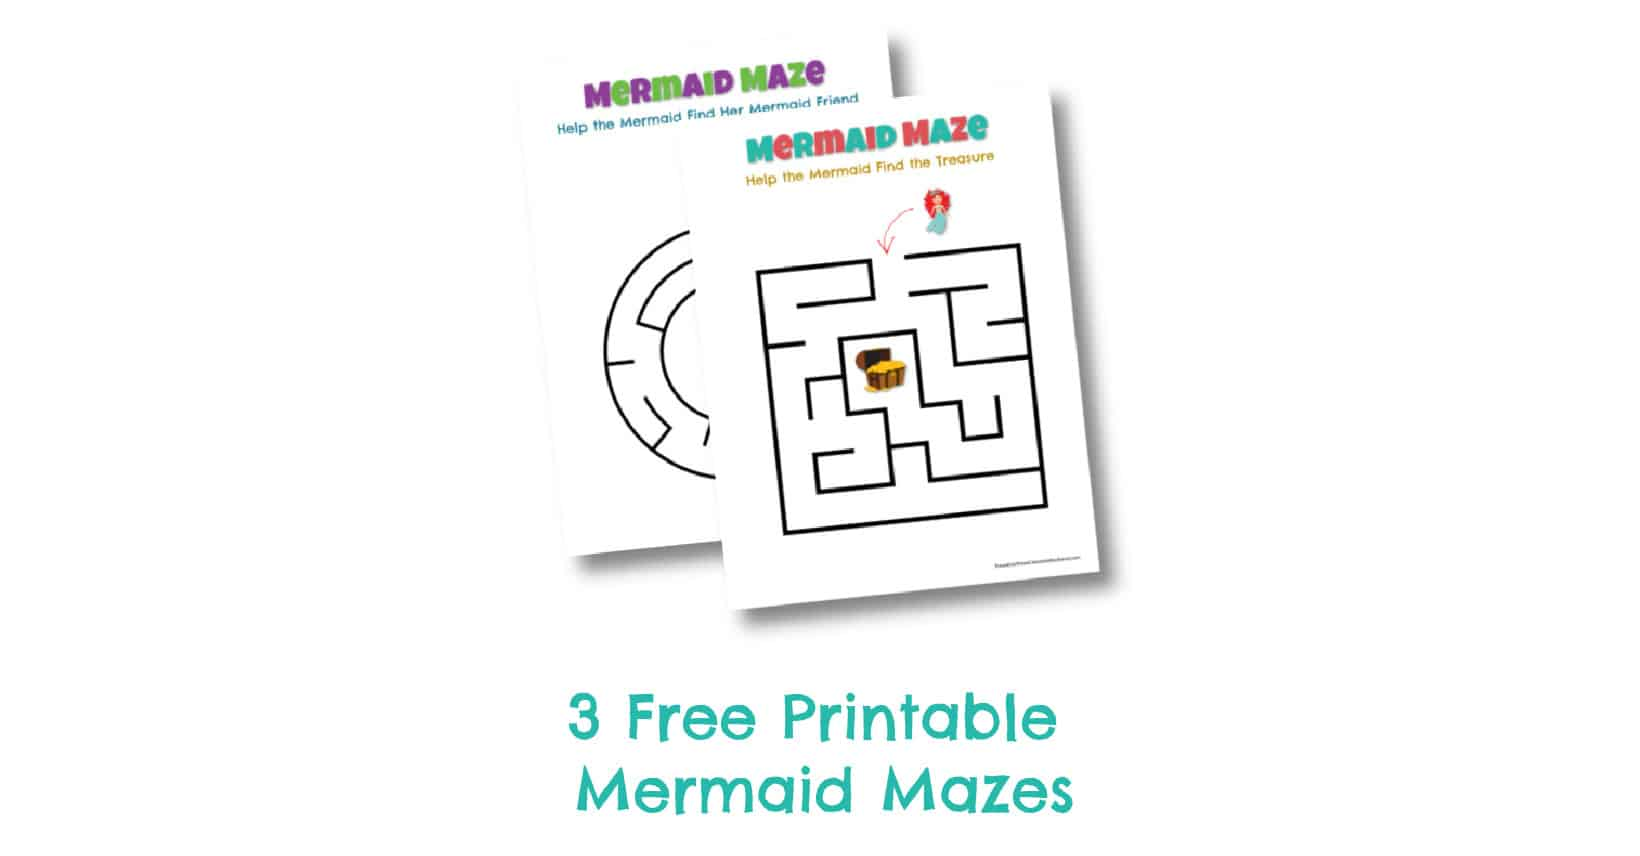 Free Printable Mermaid Mazes